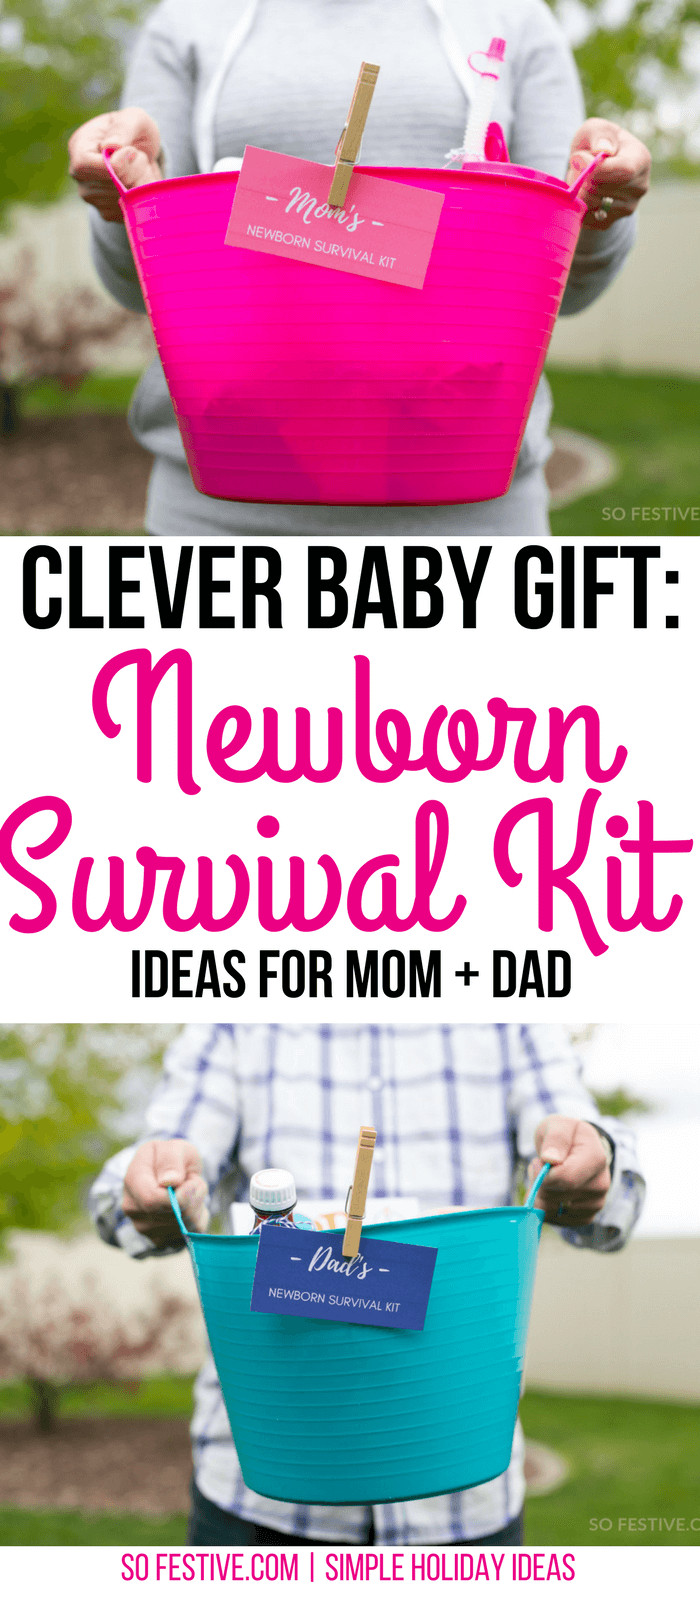 Best ideas about Newborn Baby Gift Ideas . Save or Pin Newborn Survival Kit Baby Shower Gift Idea So Festive Now.